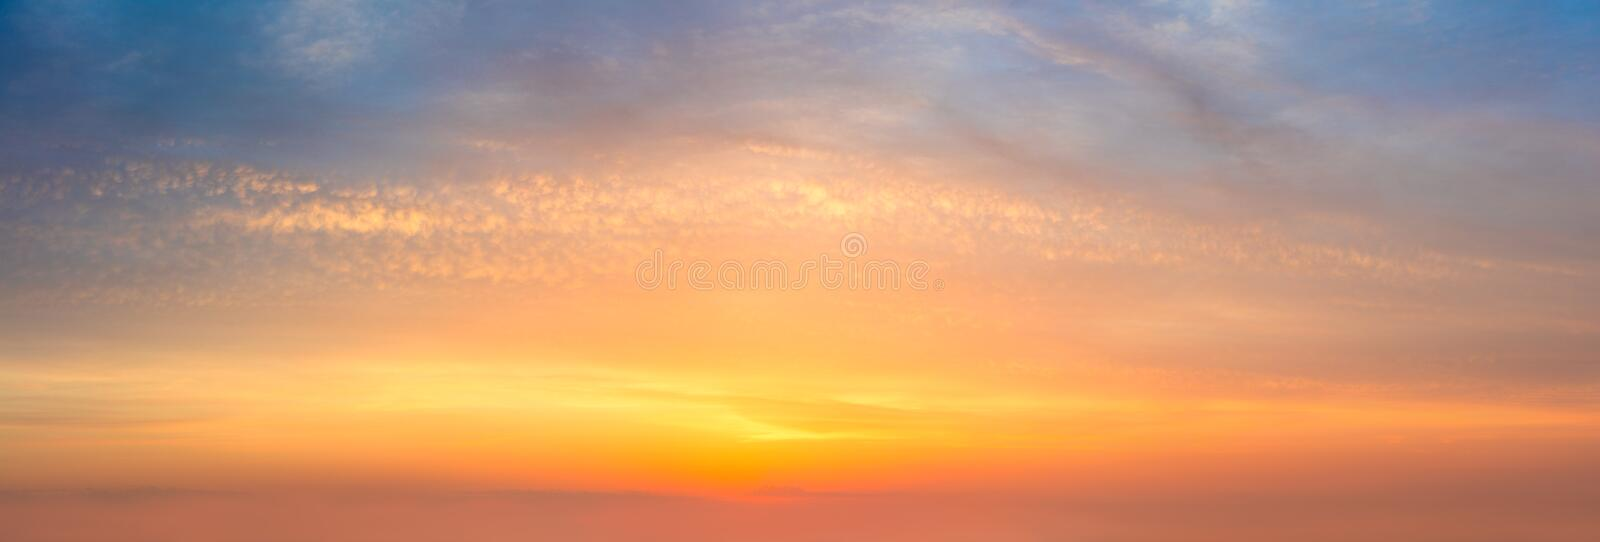 Skyscape background - Panoramic  Sunset  Sunrise Sundown Sky with colorful clouds royalty free stock photos